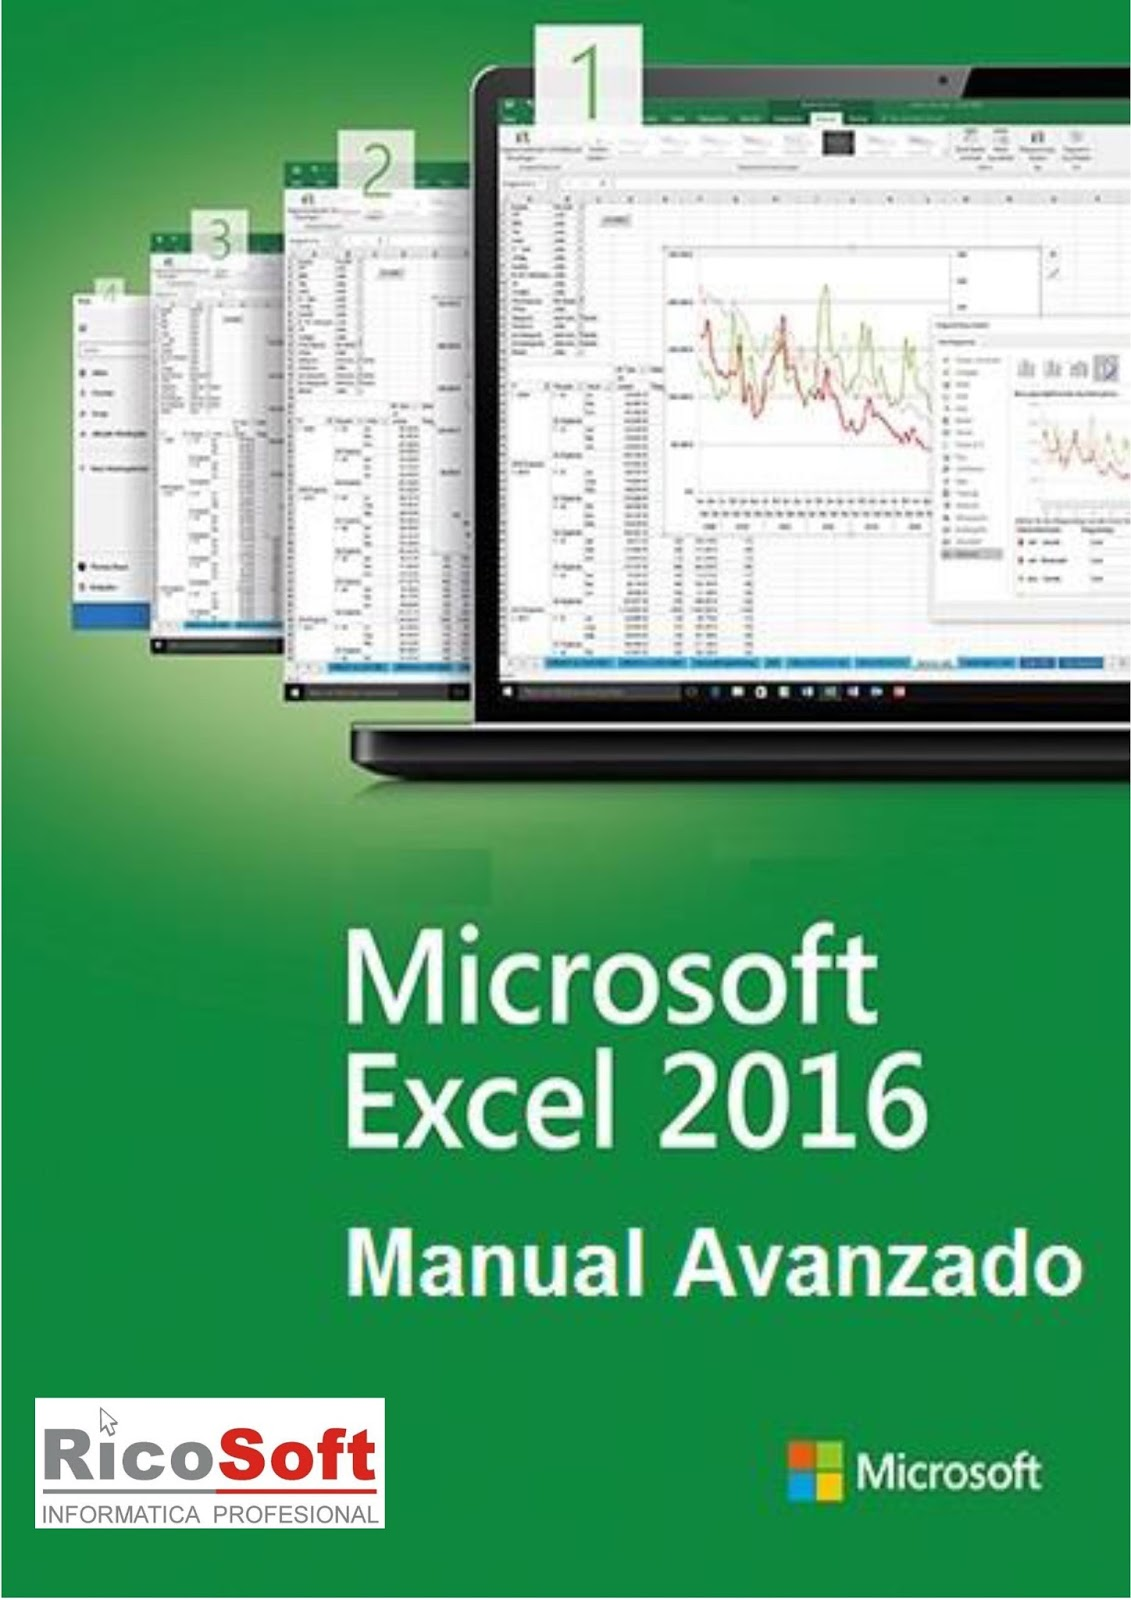 Free Microsoft Excel Manual